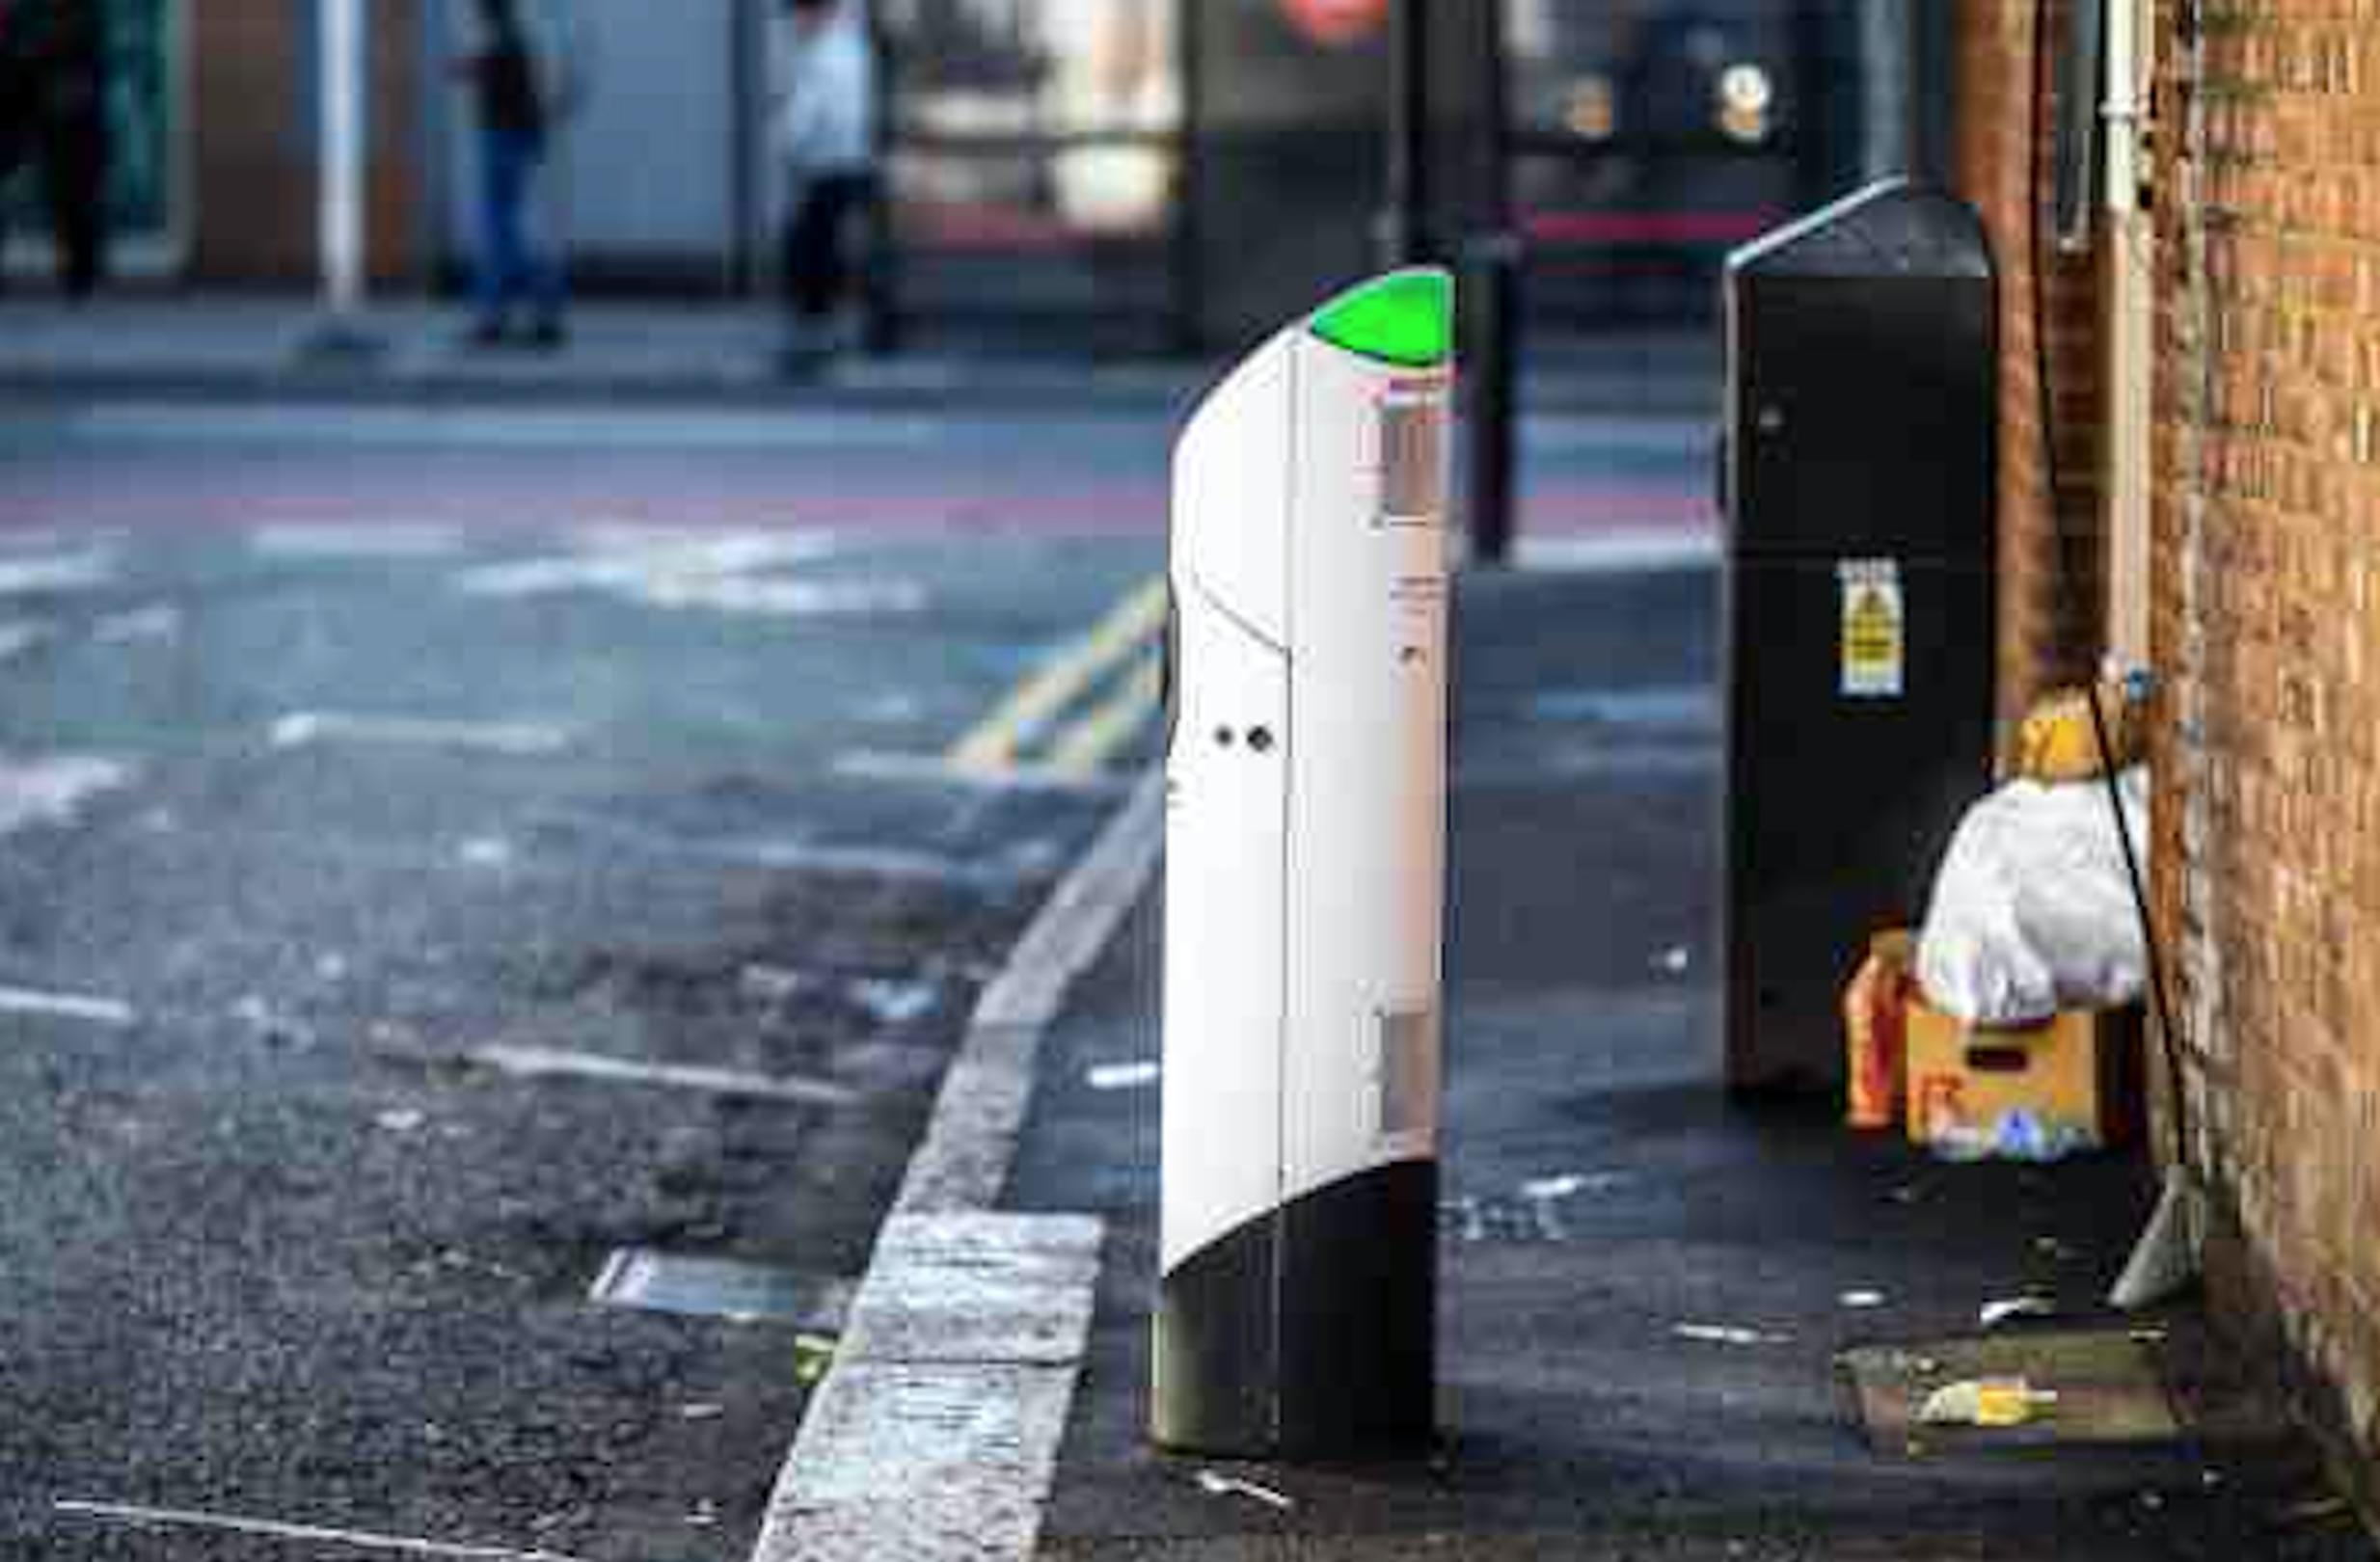 London Living Strees says EV charging points can take up scarce space and make life more difficult for pedestrians